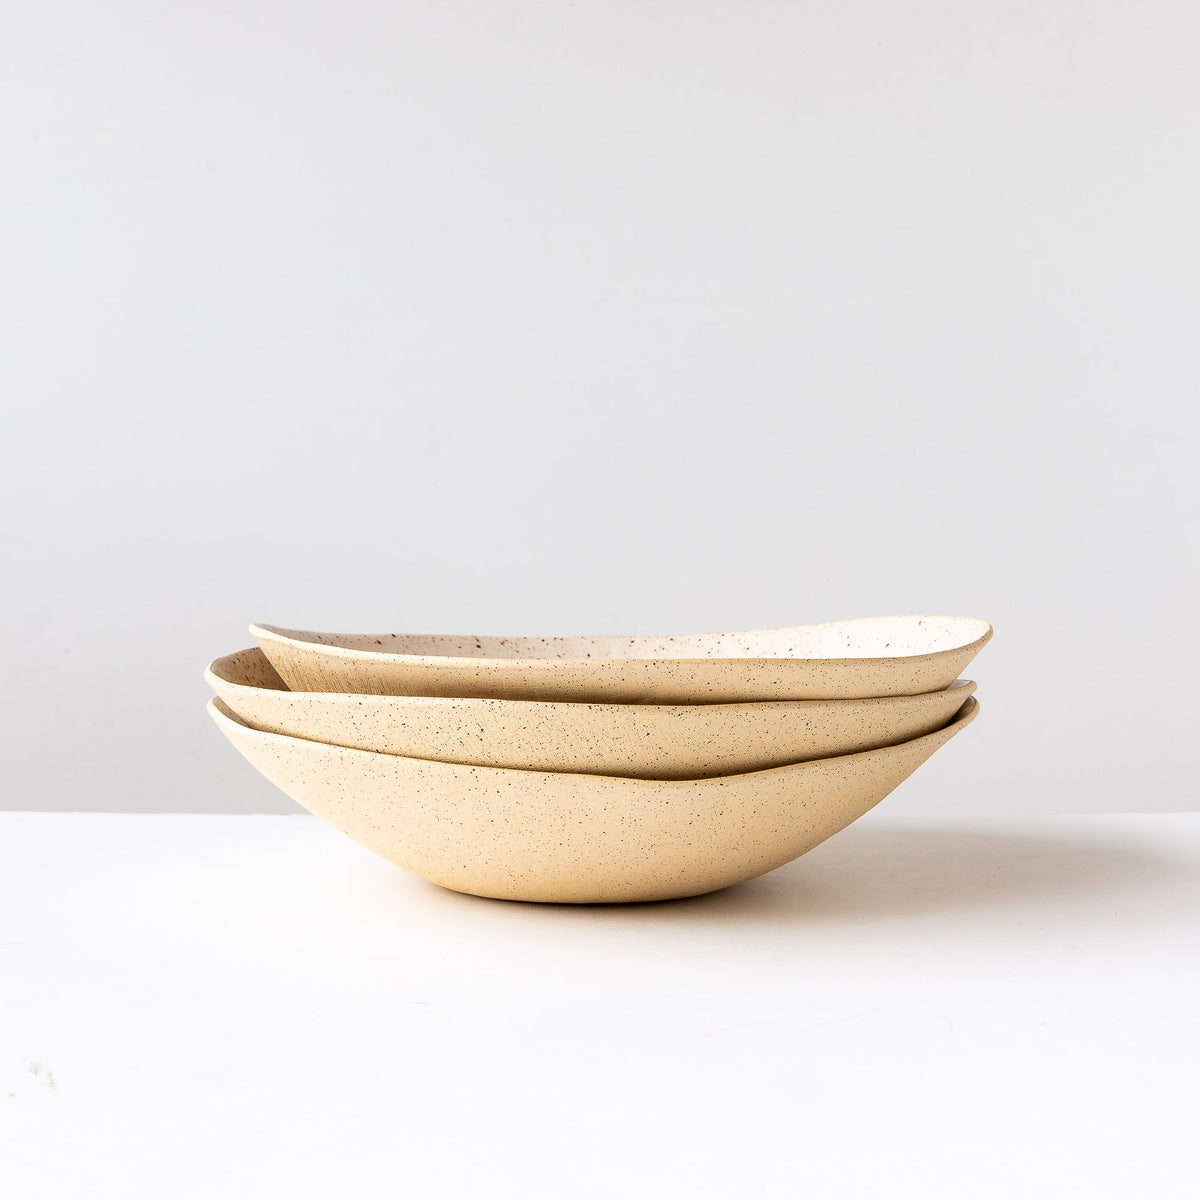 Freckled Off-White - Three Handcrafted Large Freckled Stoneware Fruit Bowls - Sold by Chic & Basta